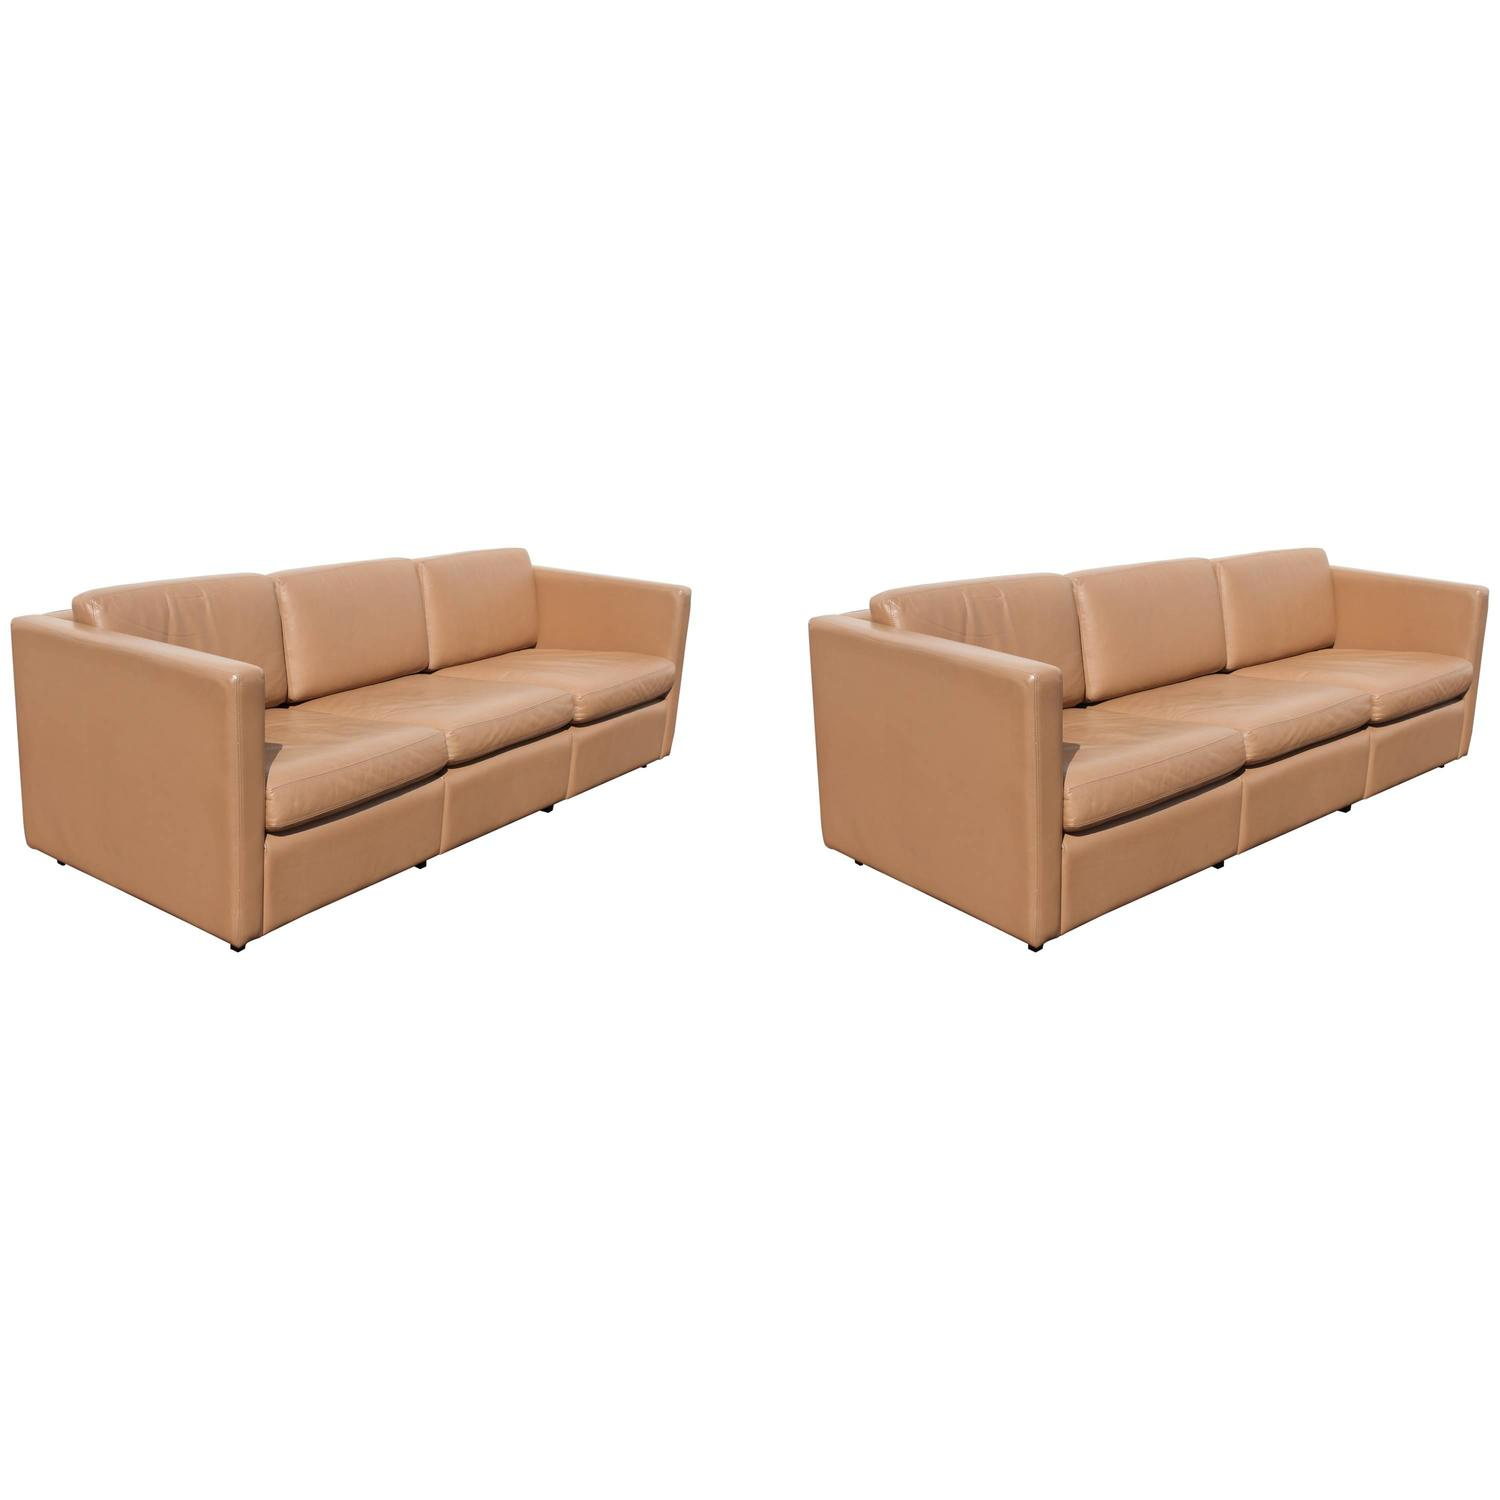 Pair Of Charles Pfister For Knoll Petite Sofas In Original